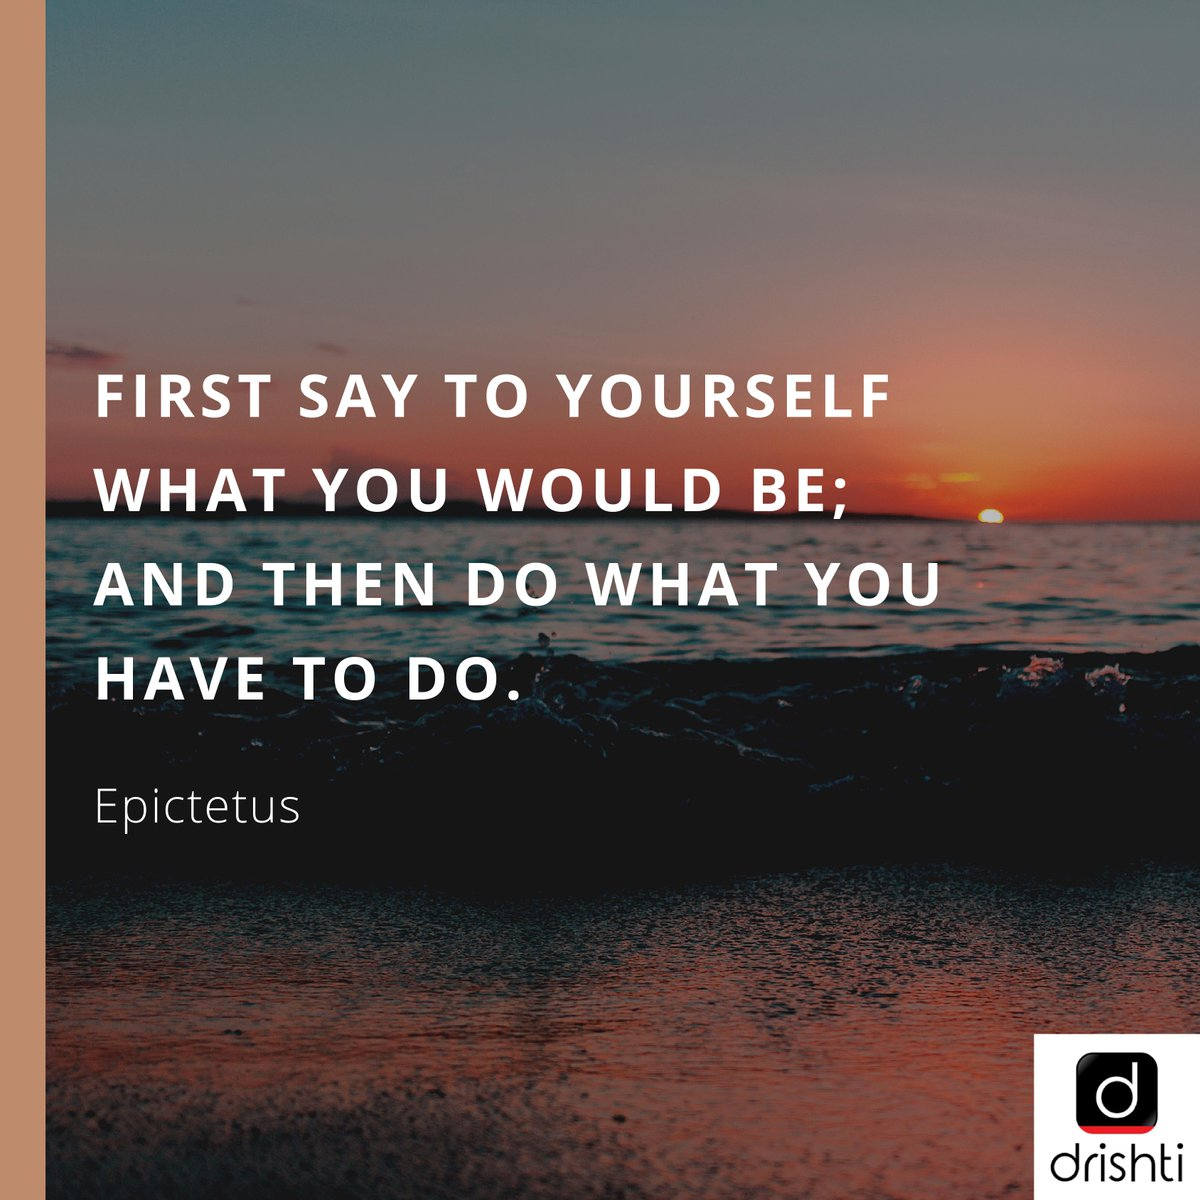 Let's have a look at this wonderful quote today!  #TuesdayThought #TuesdayMotivation #InspirationalQuote #TuesdayQuote #TeamDrishti #MotivationalQuote <br>http://pic.twitter.com/3lmqWbvfSH